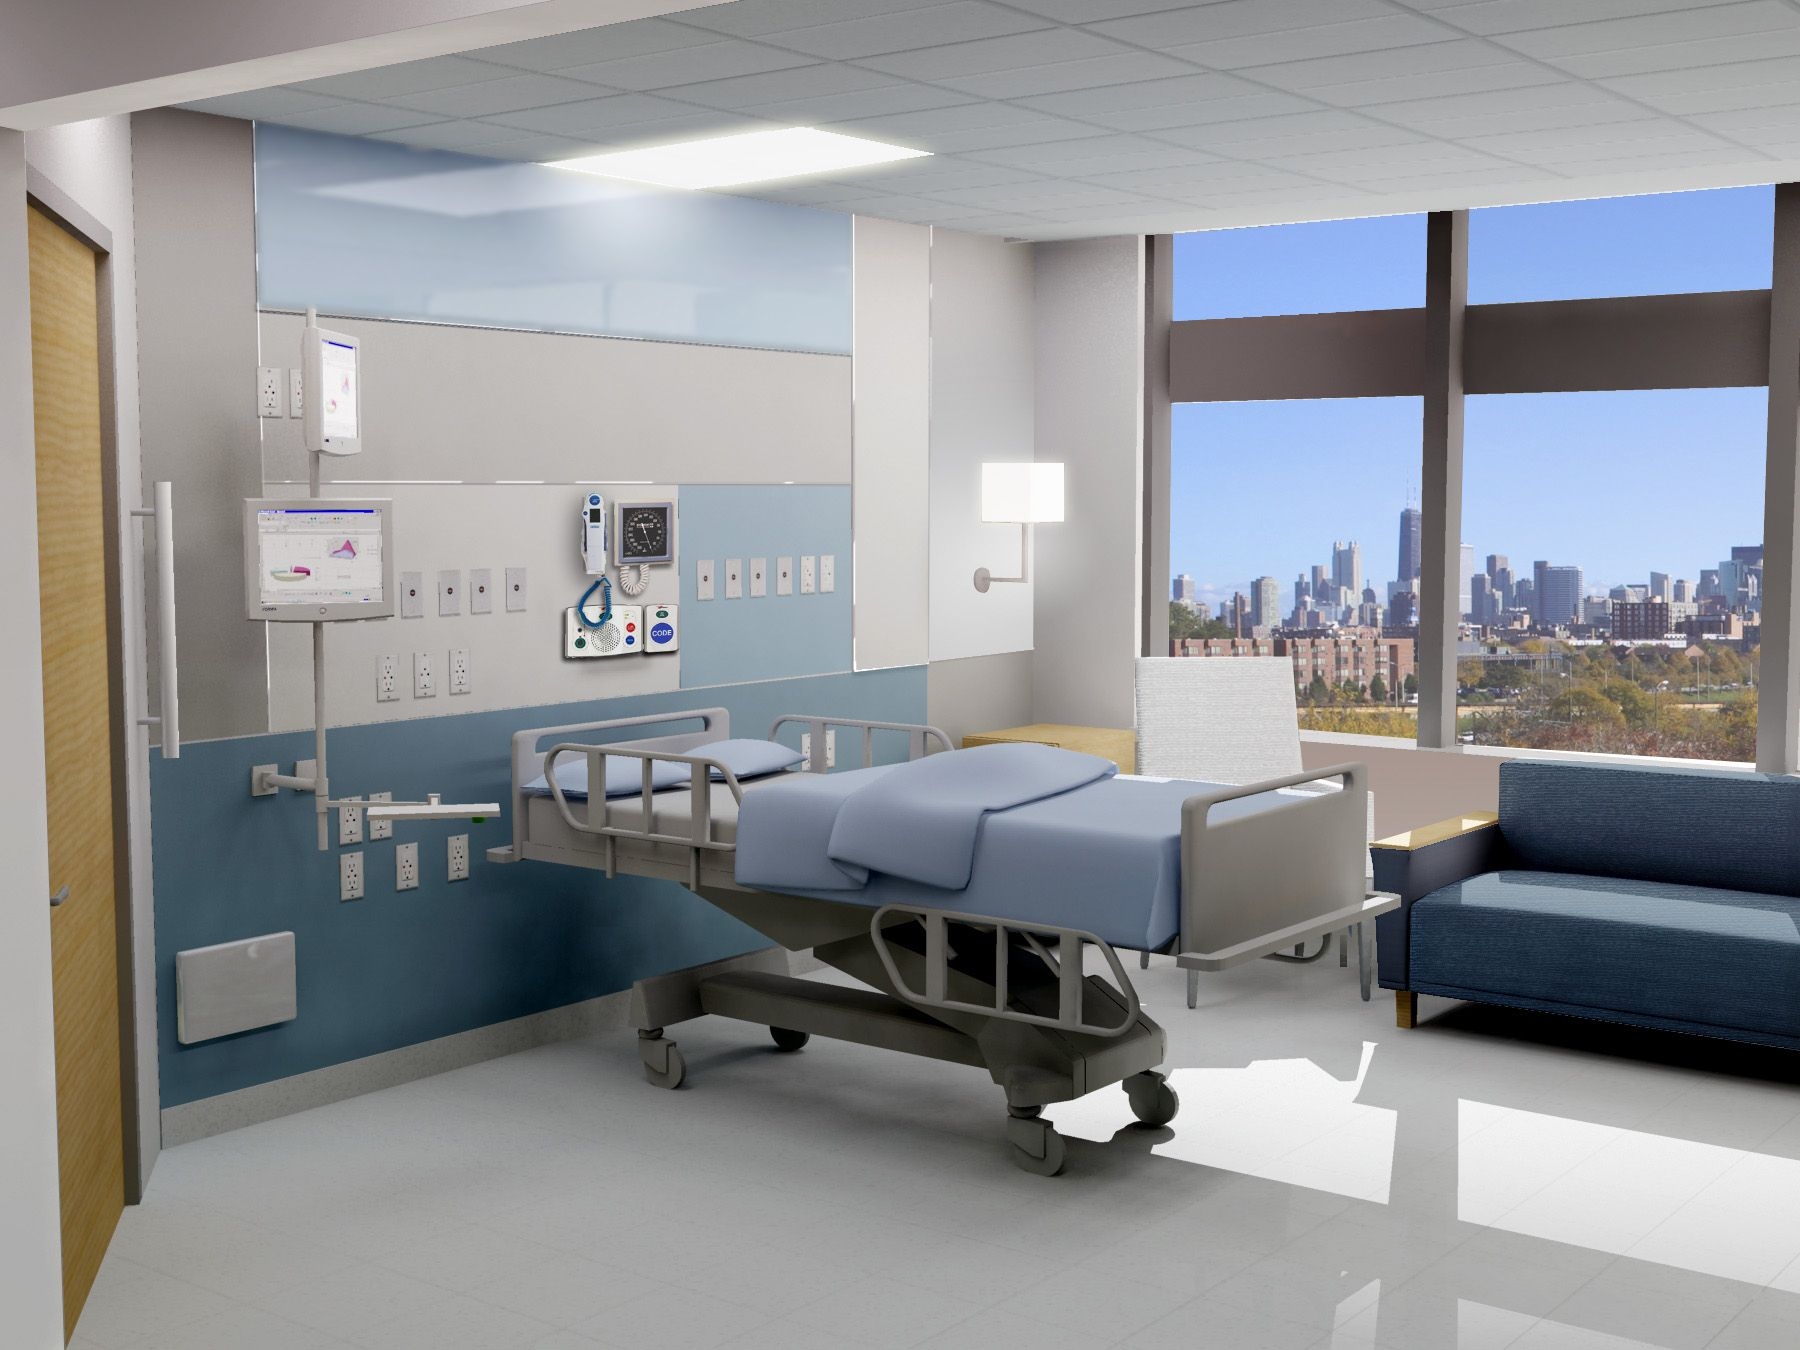 Hospital room with patient and family - Figure_7 Jpg 1 800 1 350 Pixels